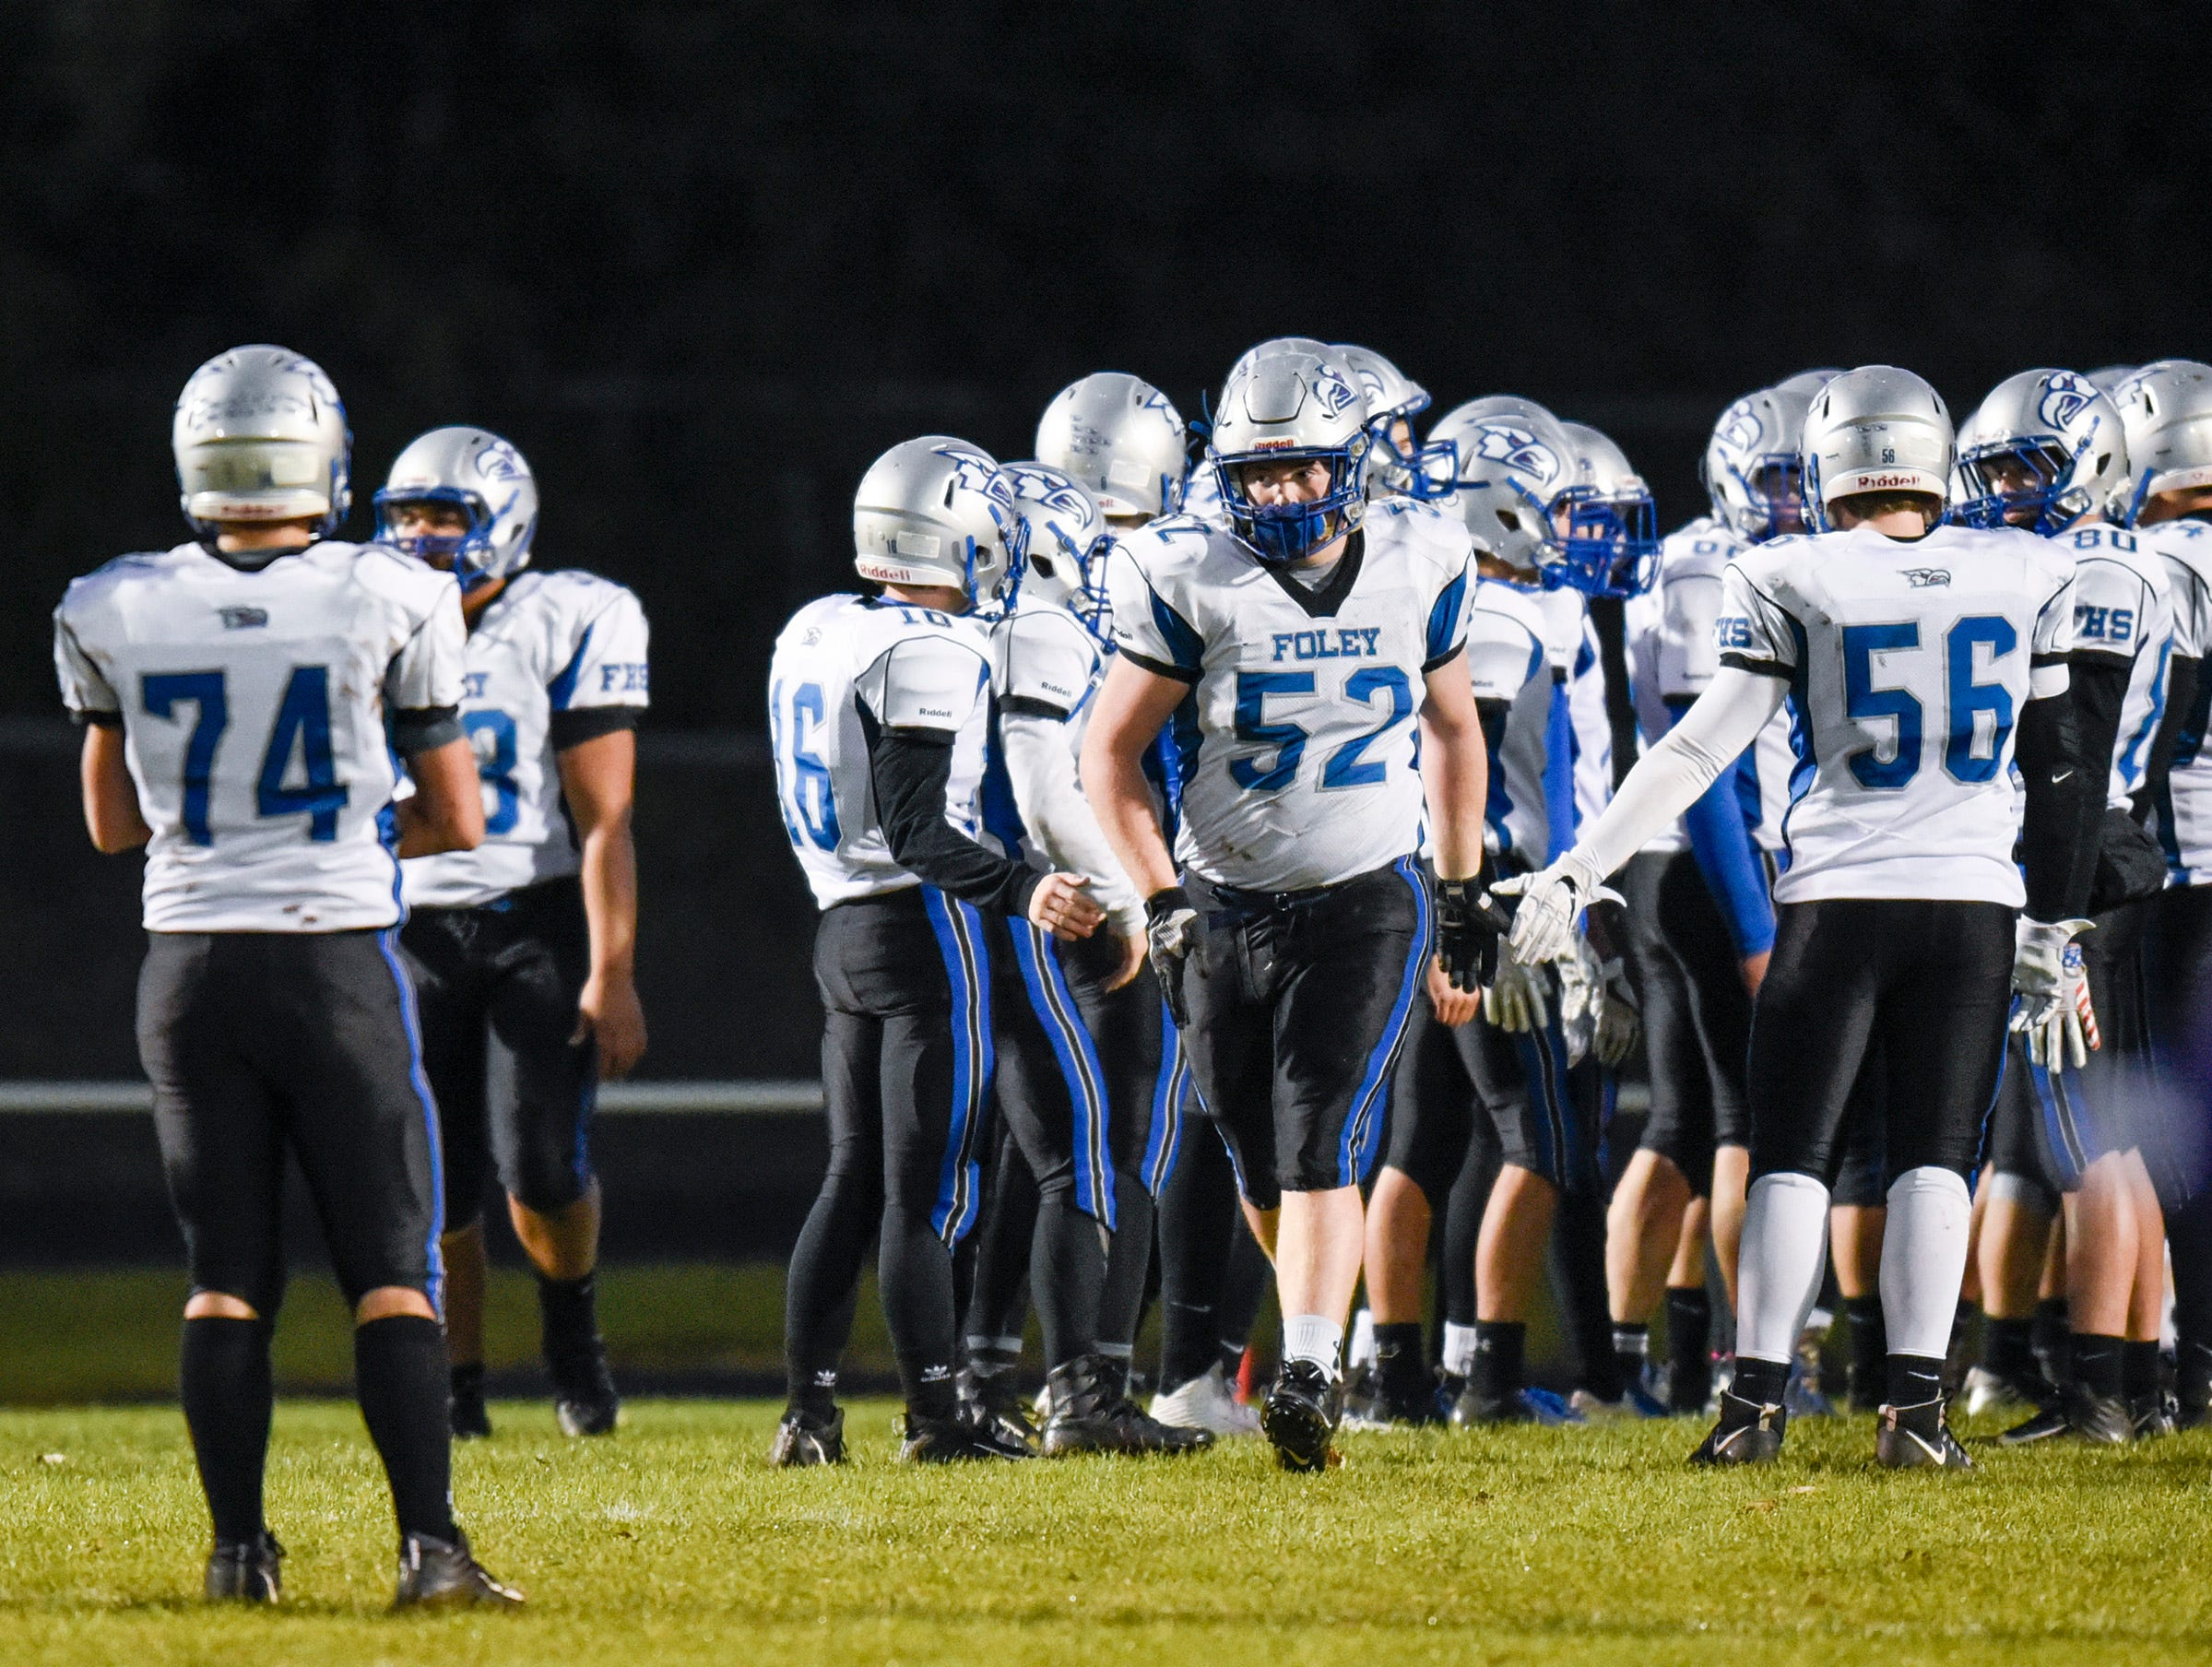 Foley players are introduced before their game against Albany Friday, Oct. 12, in Albany.